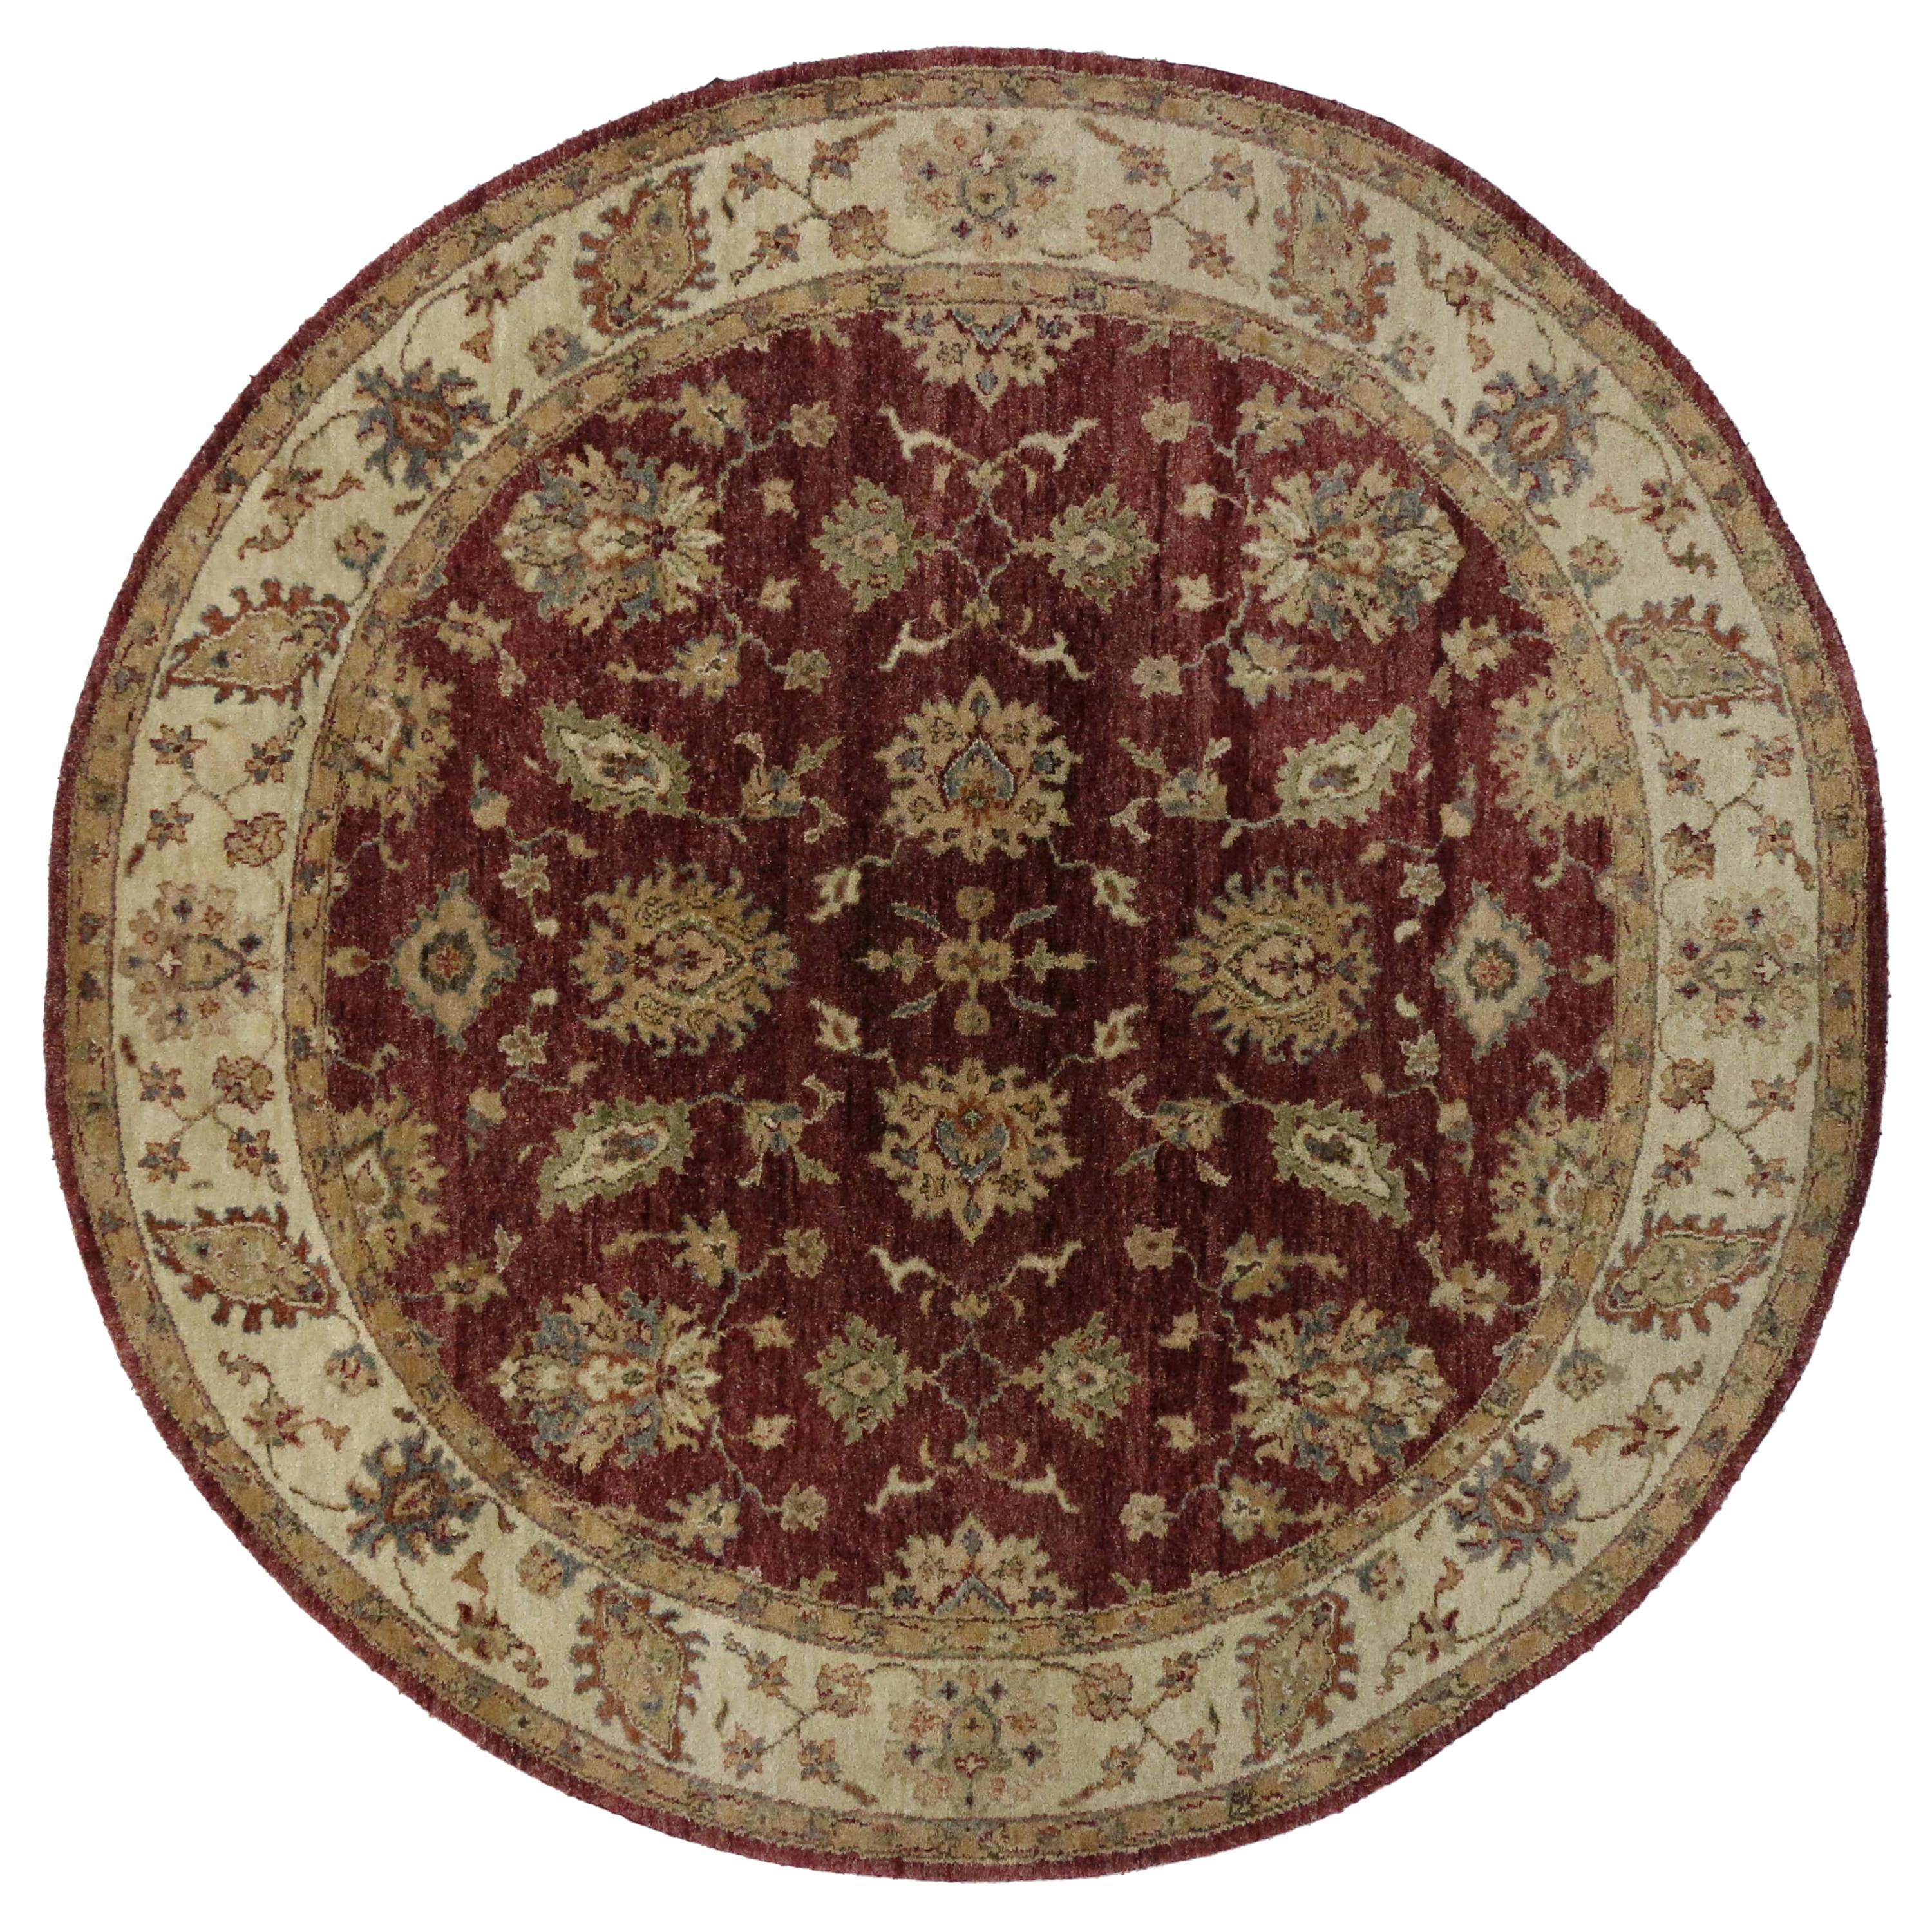 Vintage Indian Round Area Rug, Circular Rug with Traditional Style